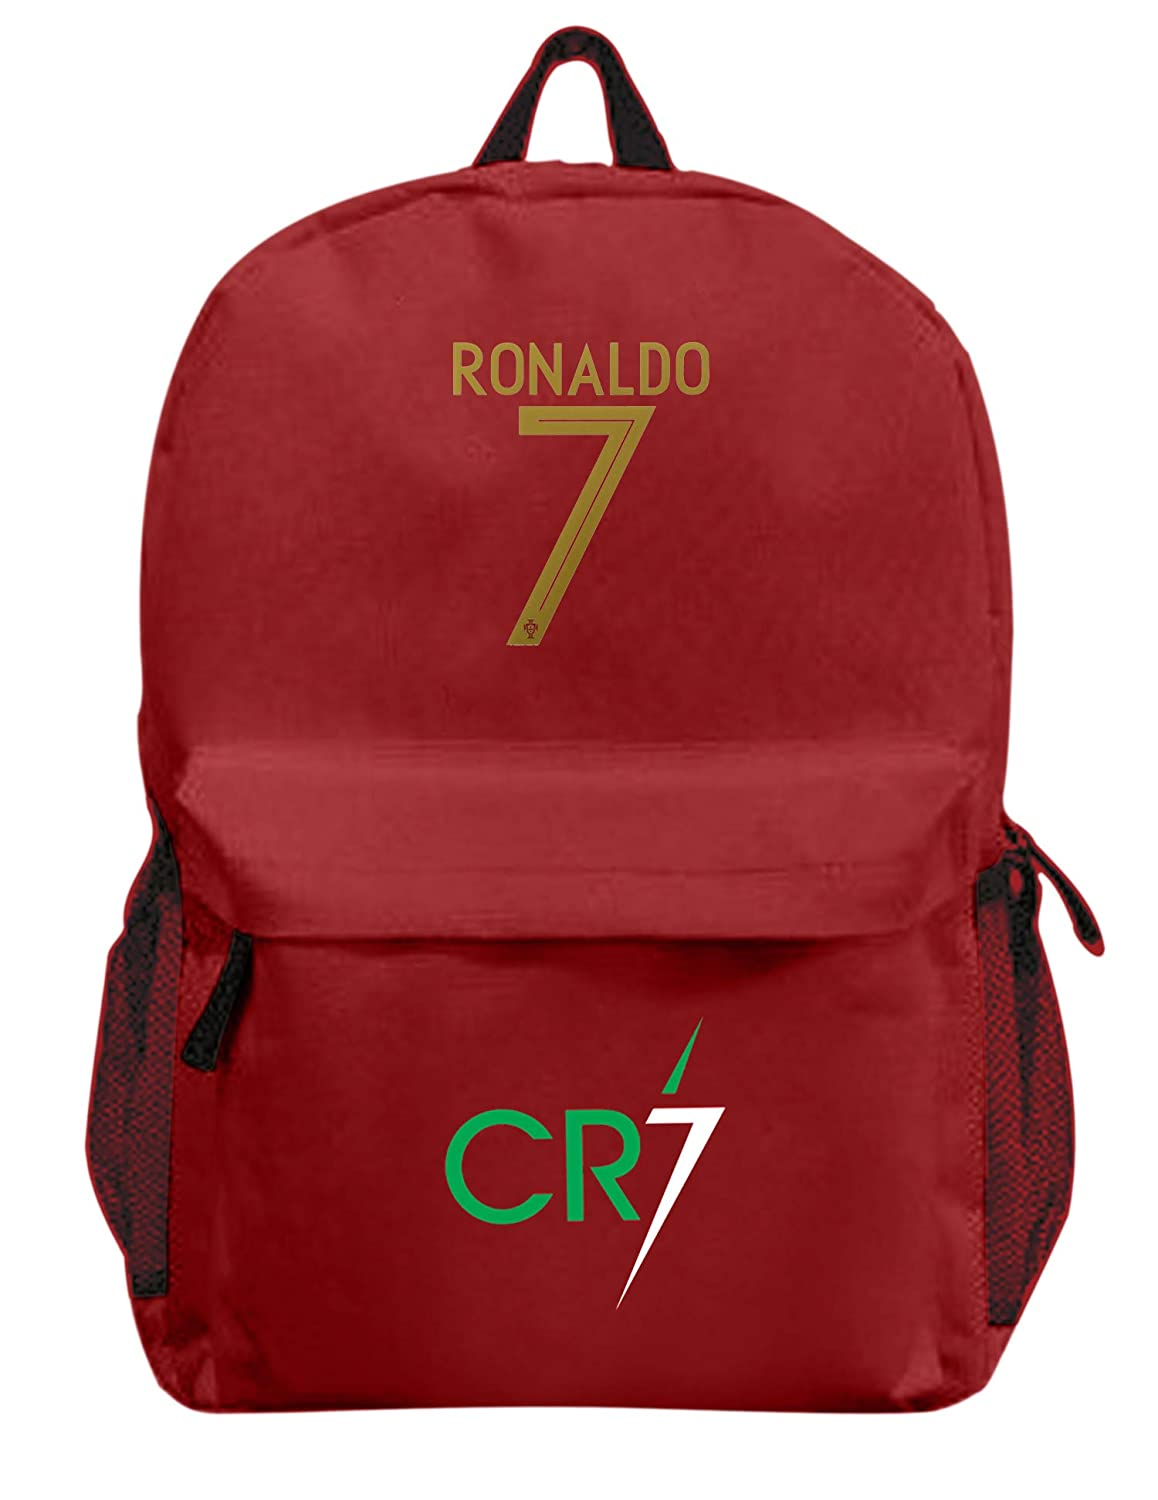 Cristiano Ronaldo #7 Soccer Picture Backpack Gift School Bag Dimensions H 16.3 x W 11.8 x D 5.9 in